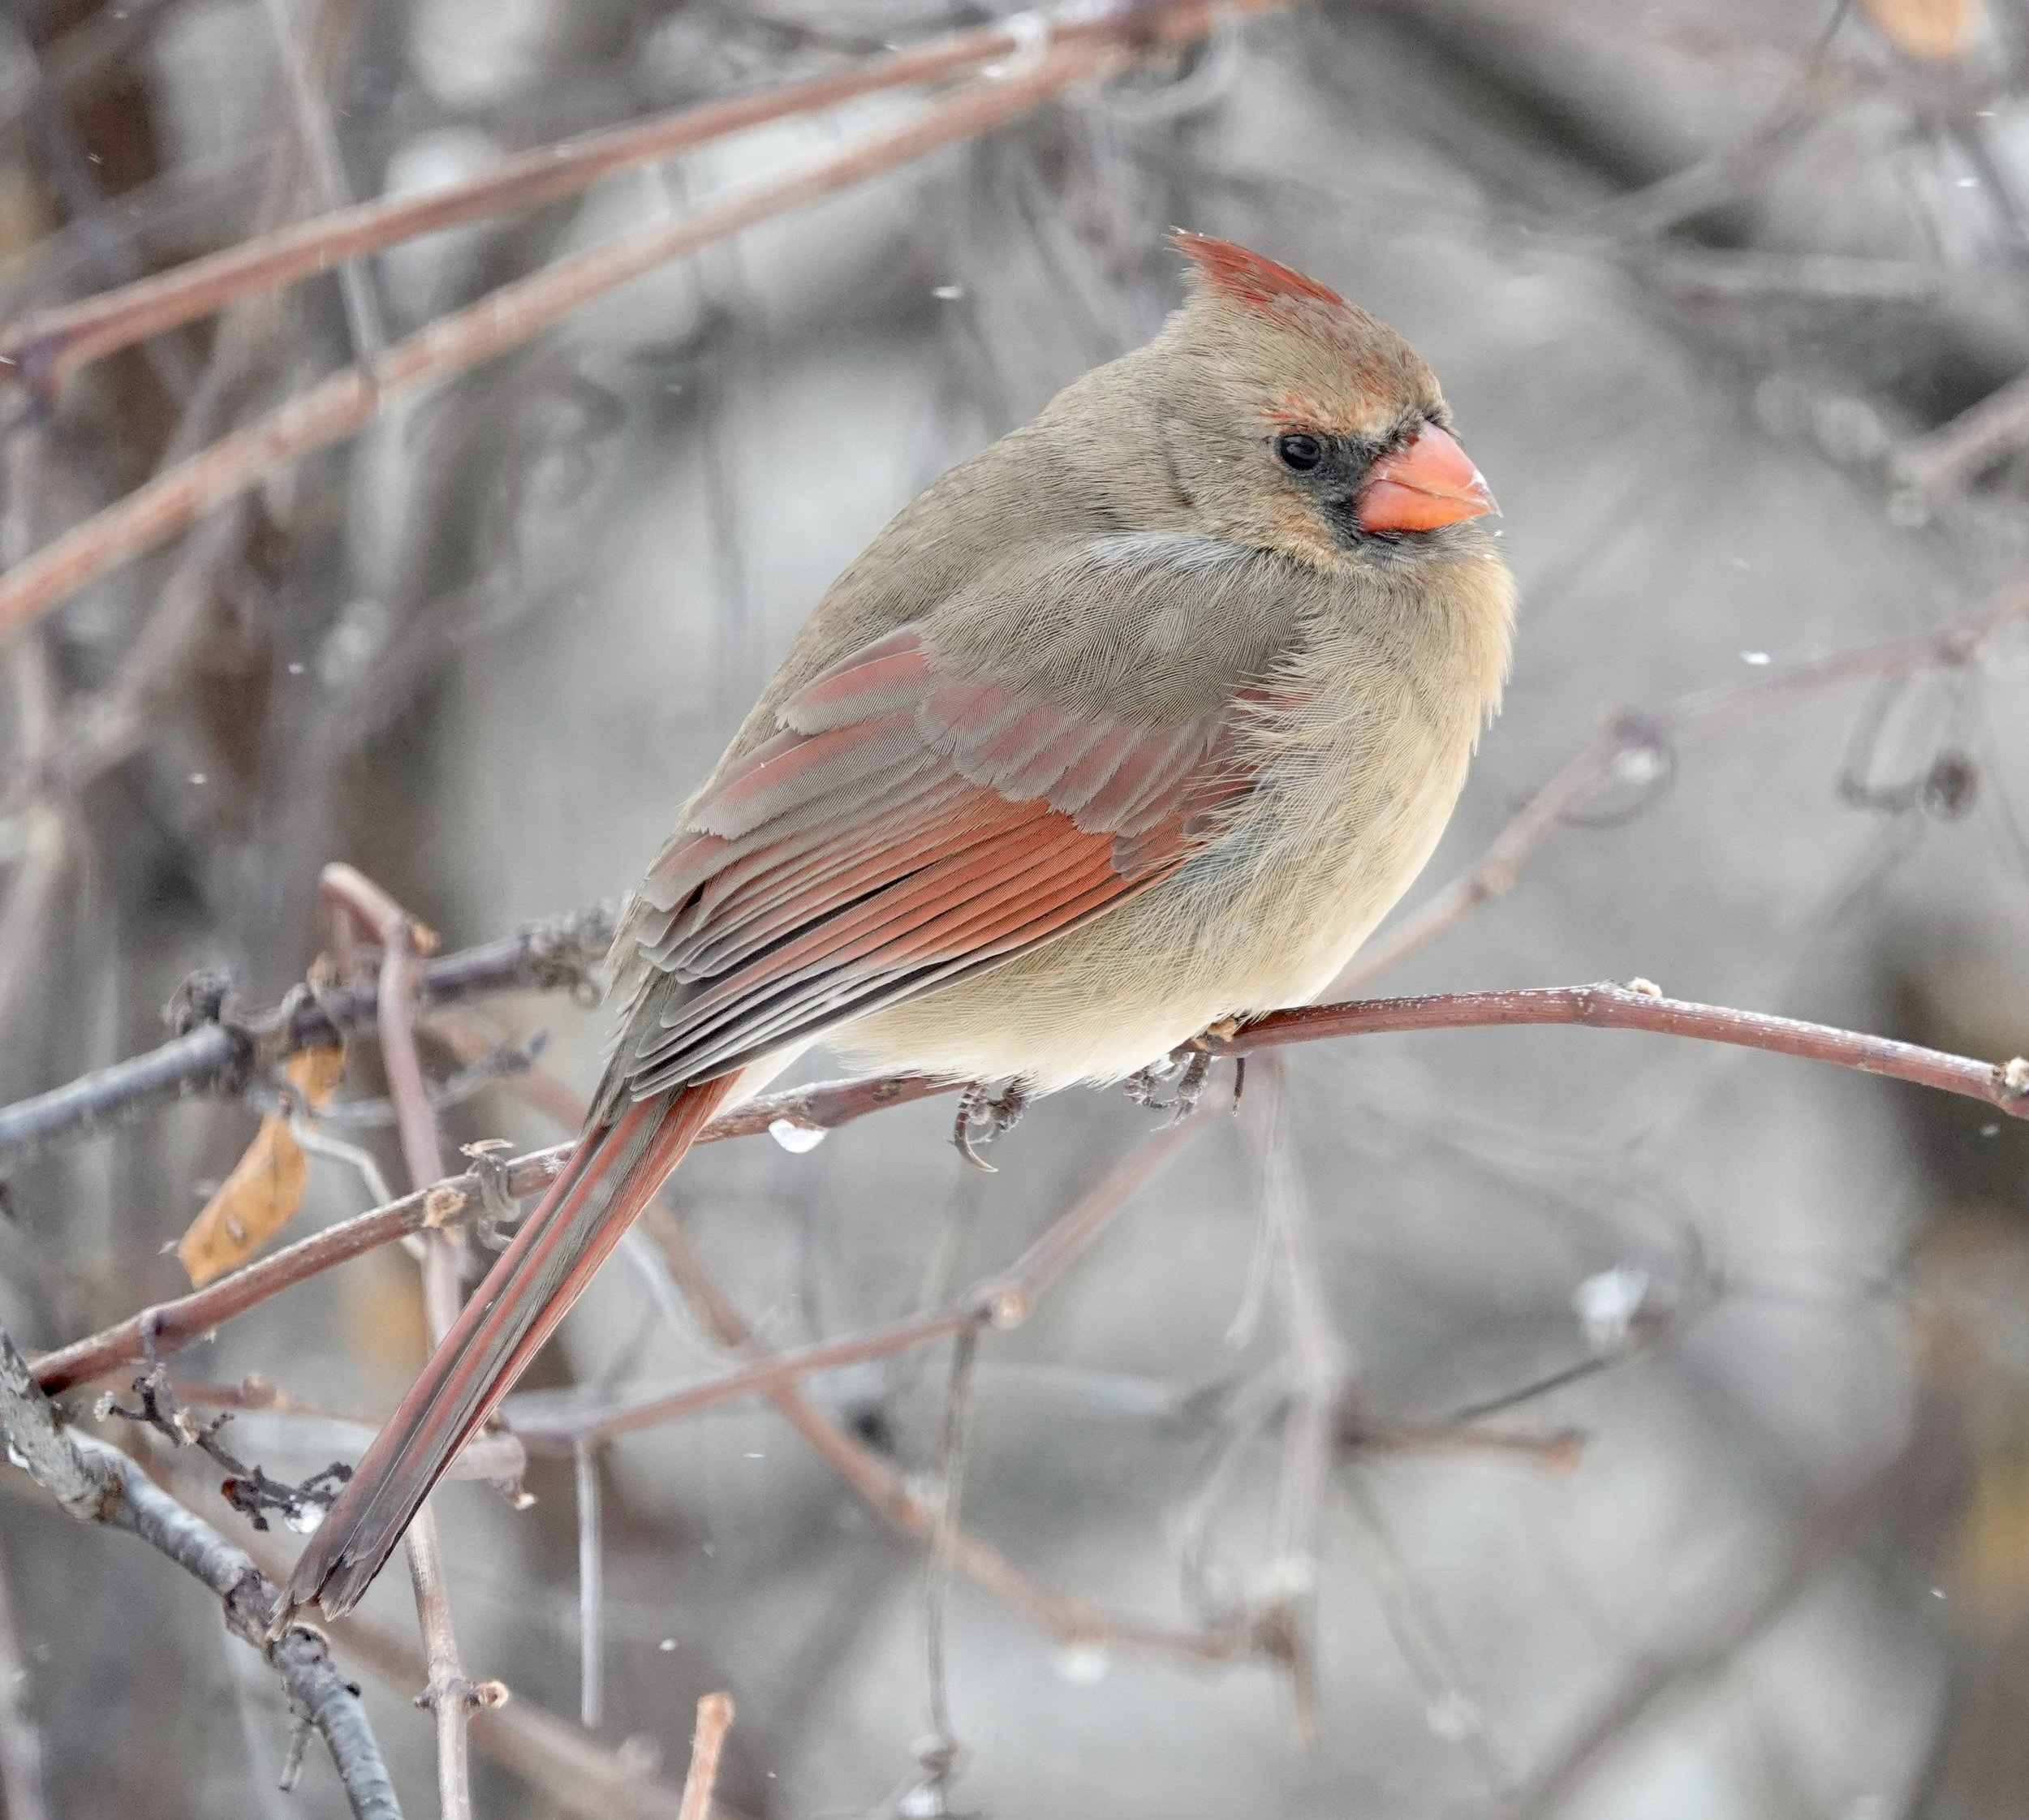 This pensive female cardinal may be California dreaming on such a Minnesota winter's day.